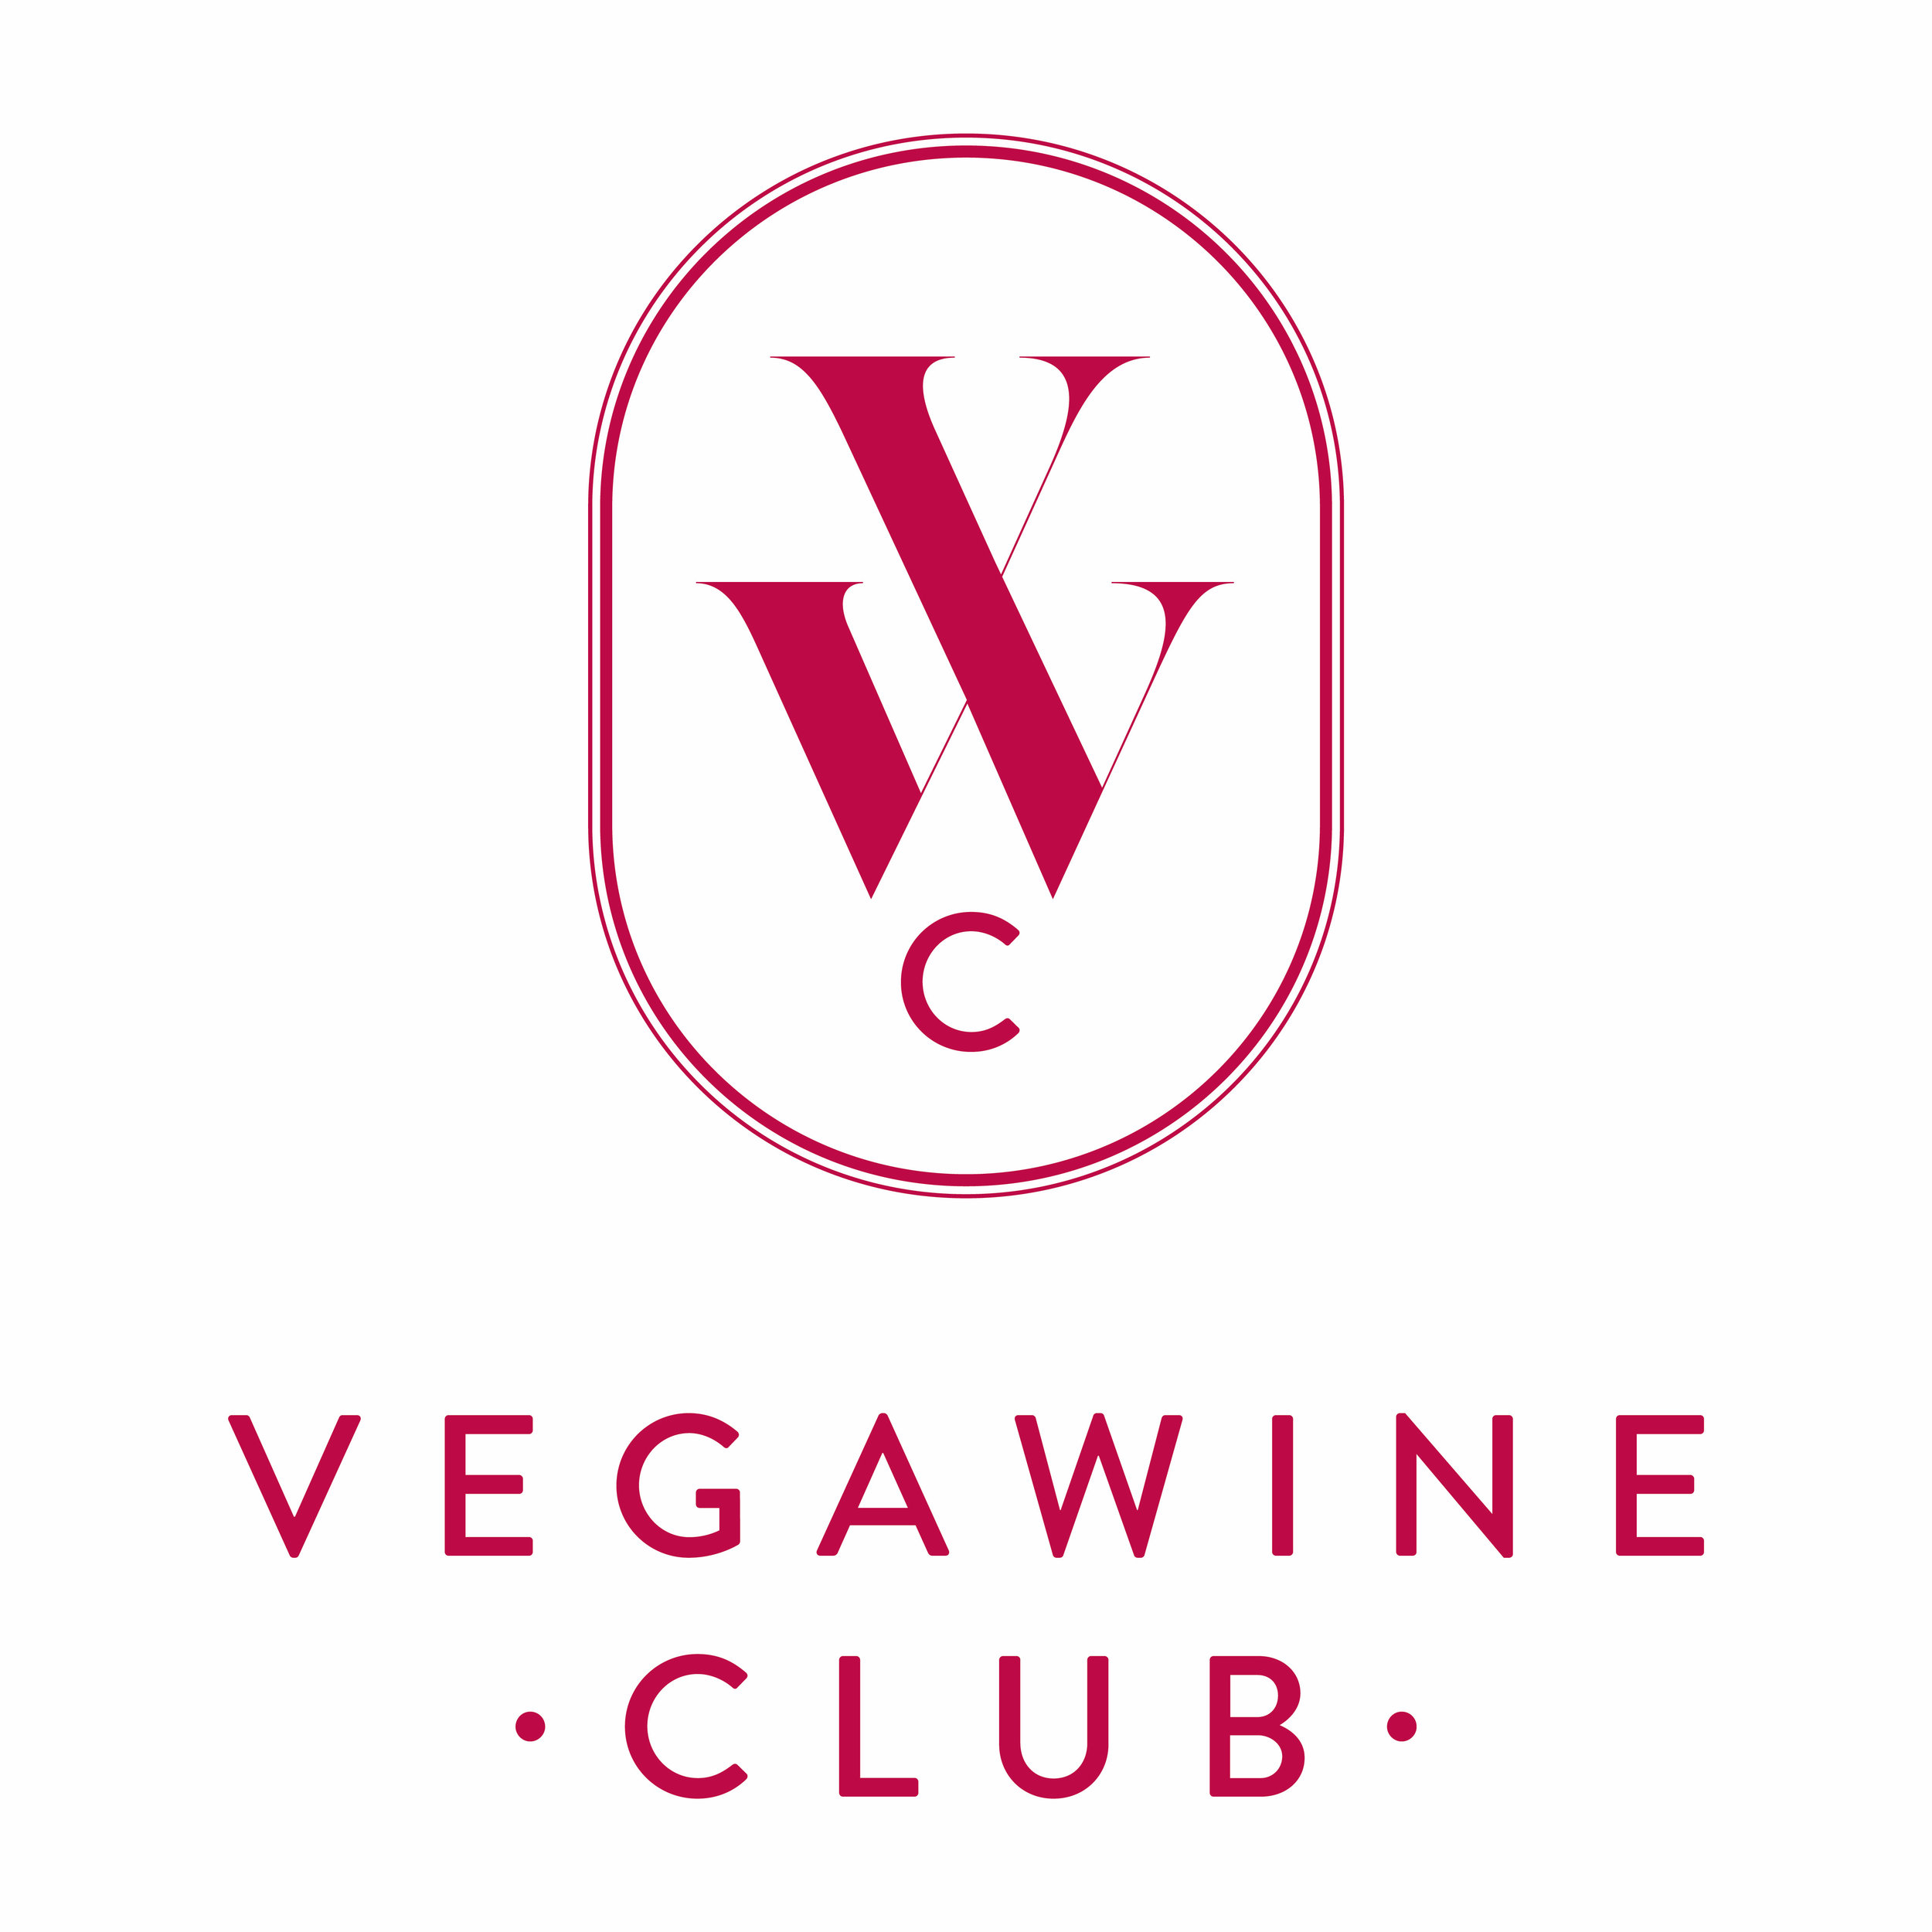 Vegawine.club_Logo_BordeauxHR.jpg